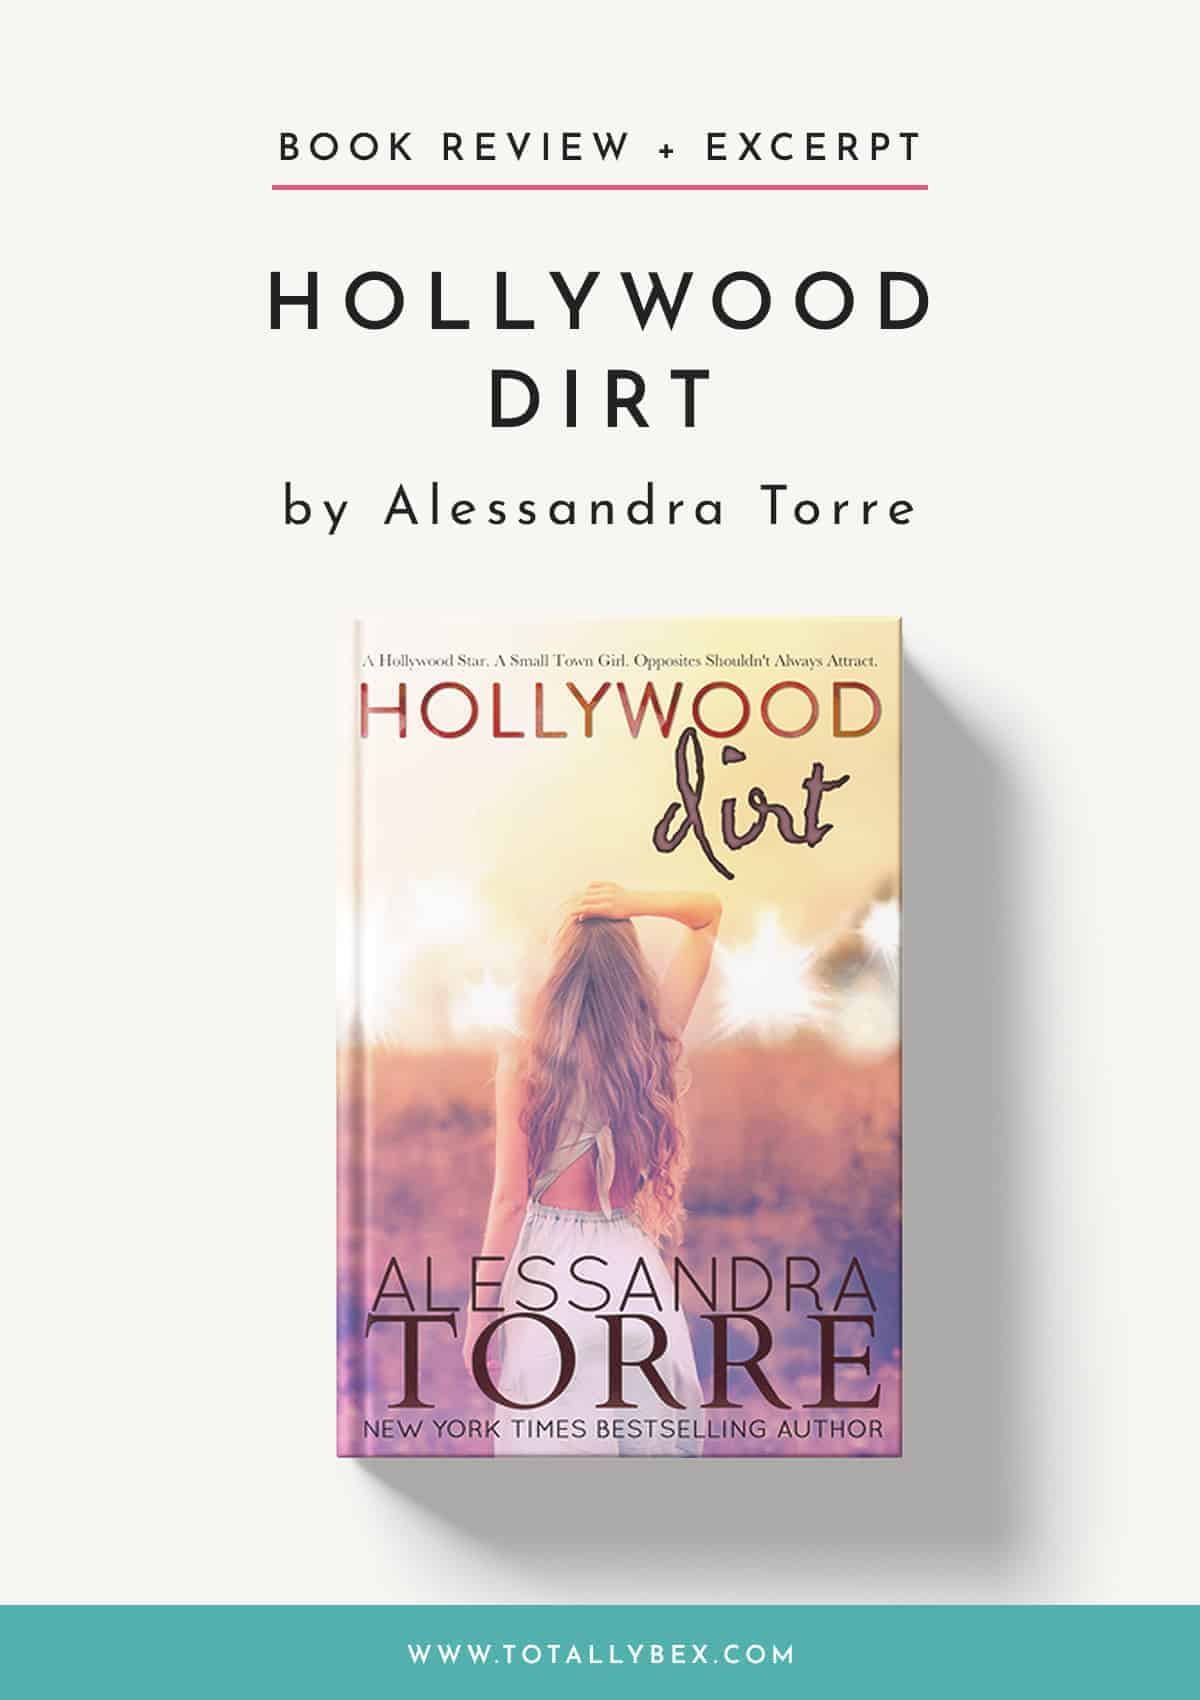 Hollywood Dirt by Alessandra Torre-Book Review+Excerpt